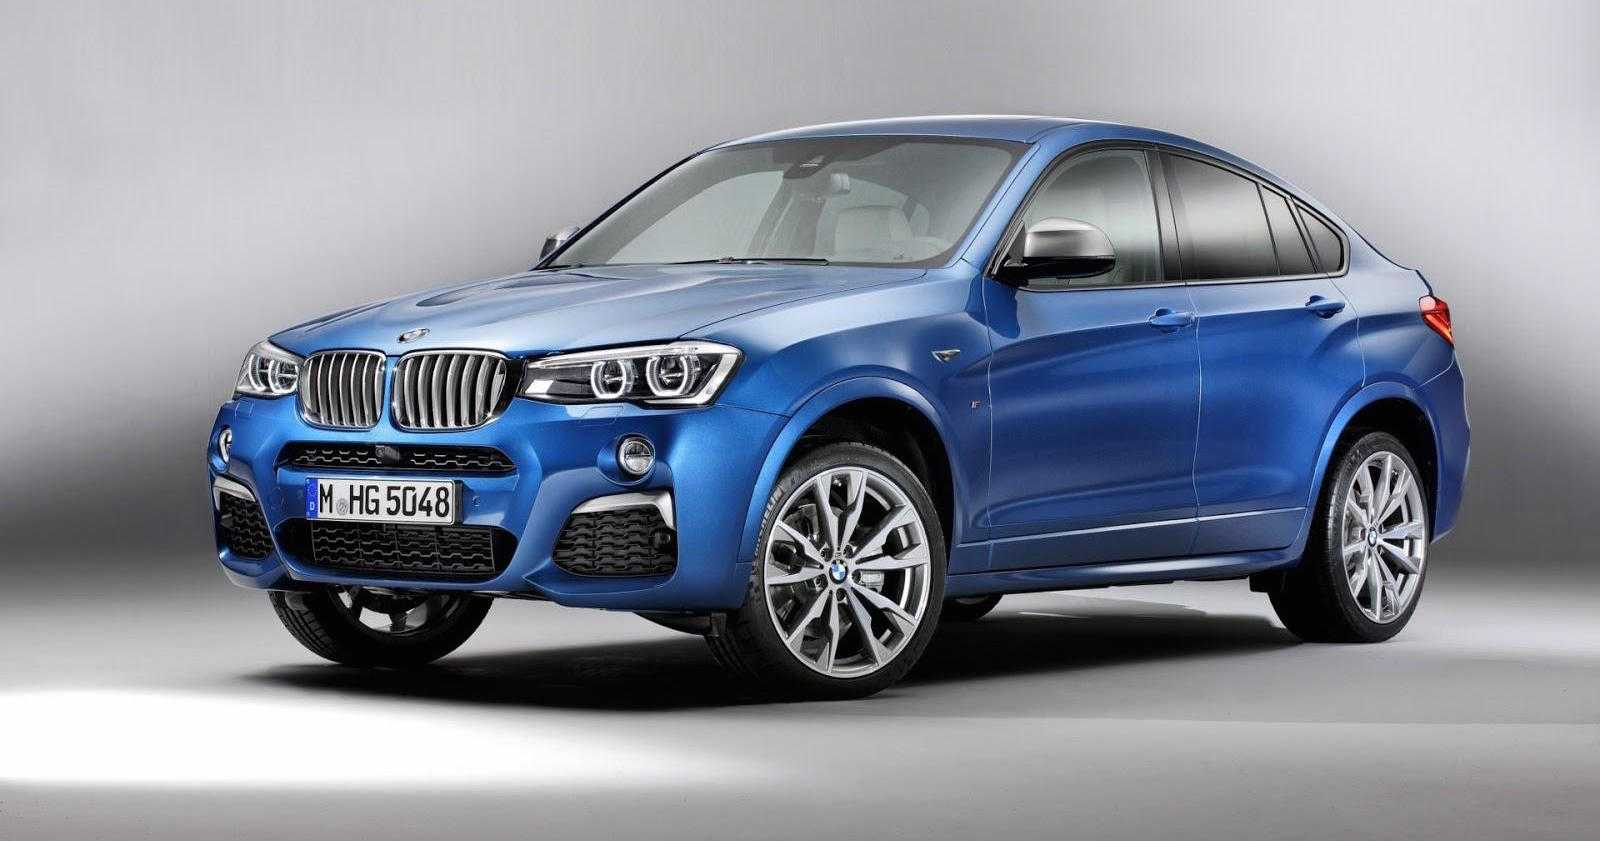 2017 BMW X4 M40i – Leaked Images Show First Glimpse at Interior